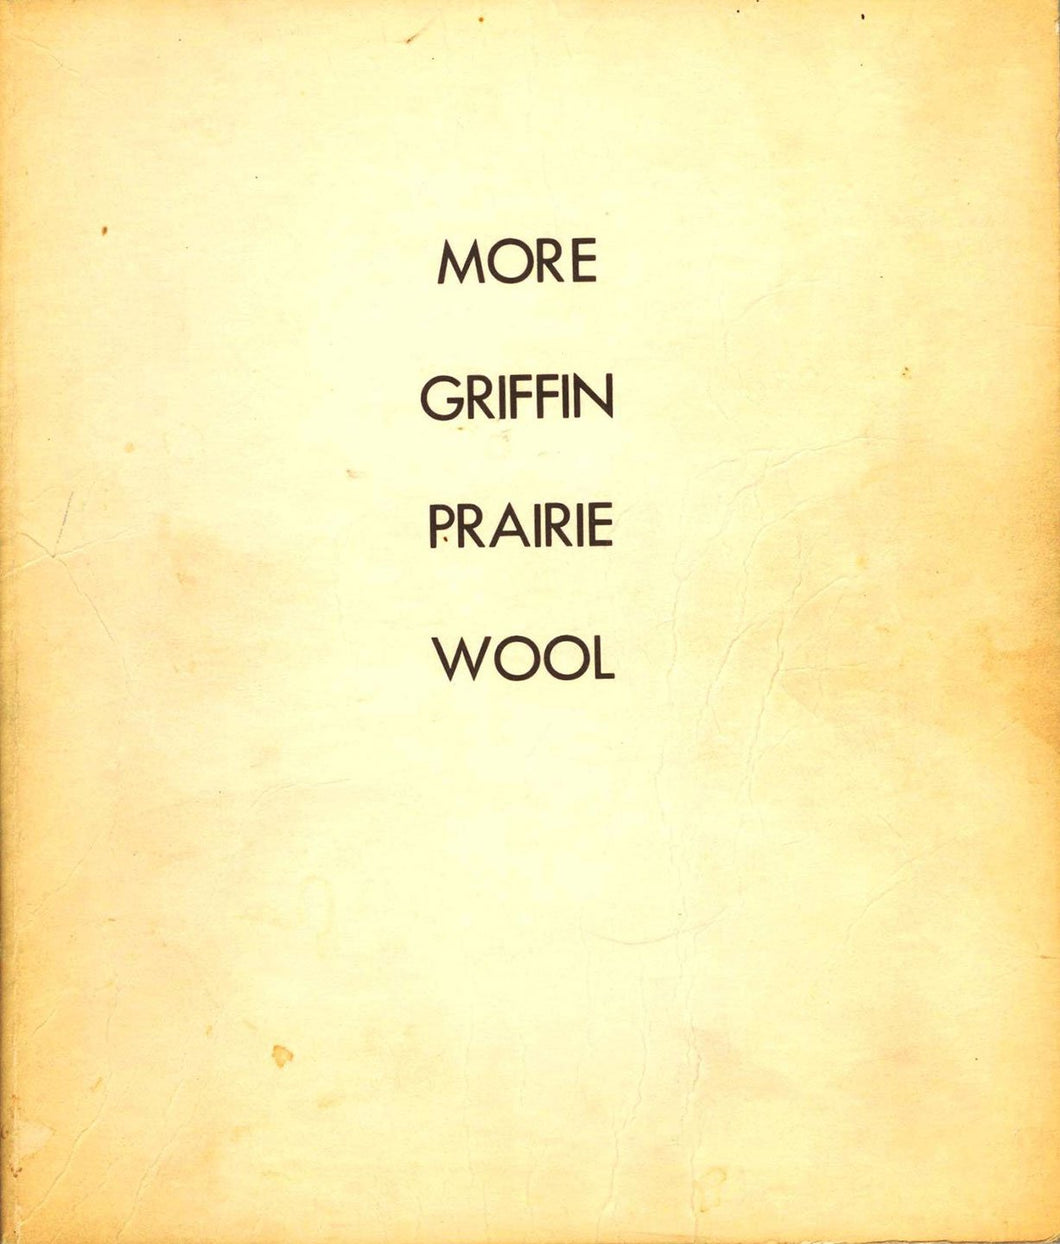 More Griffin Prairie Wool